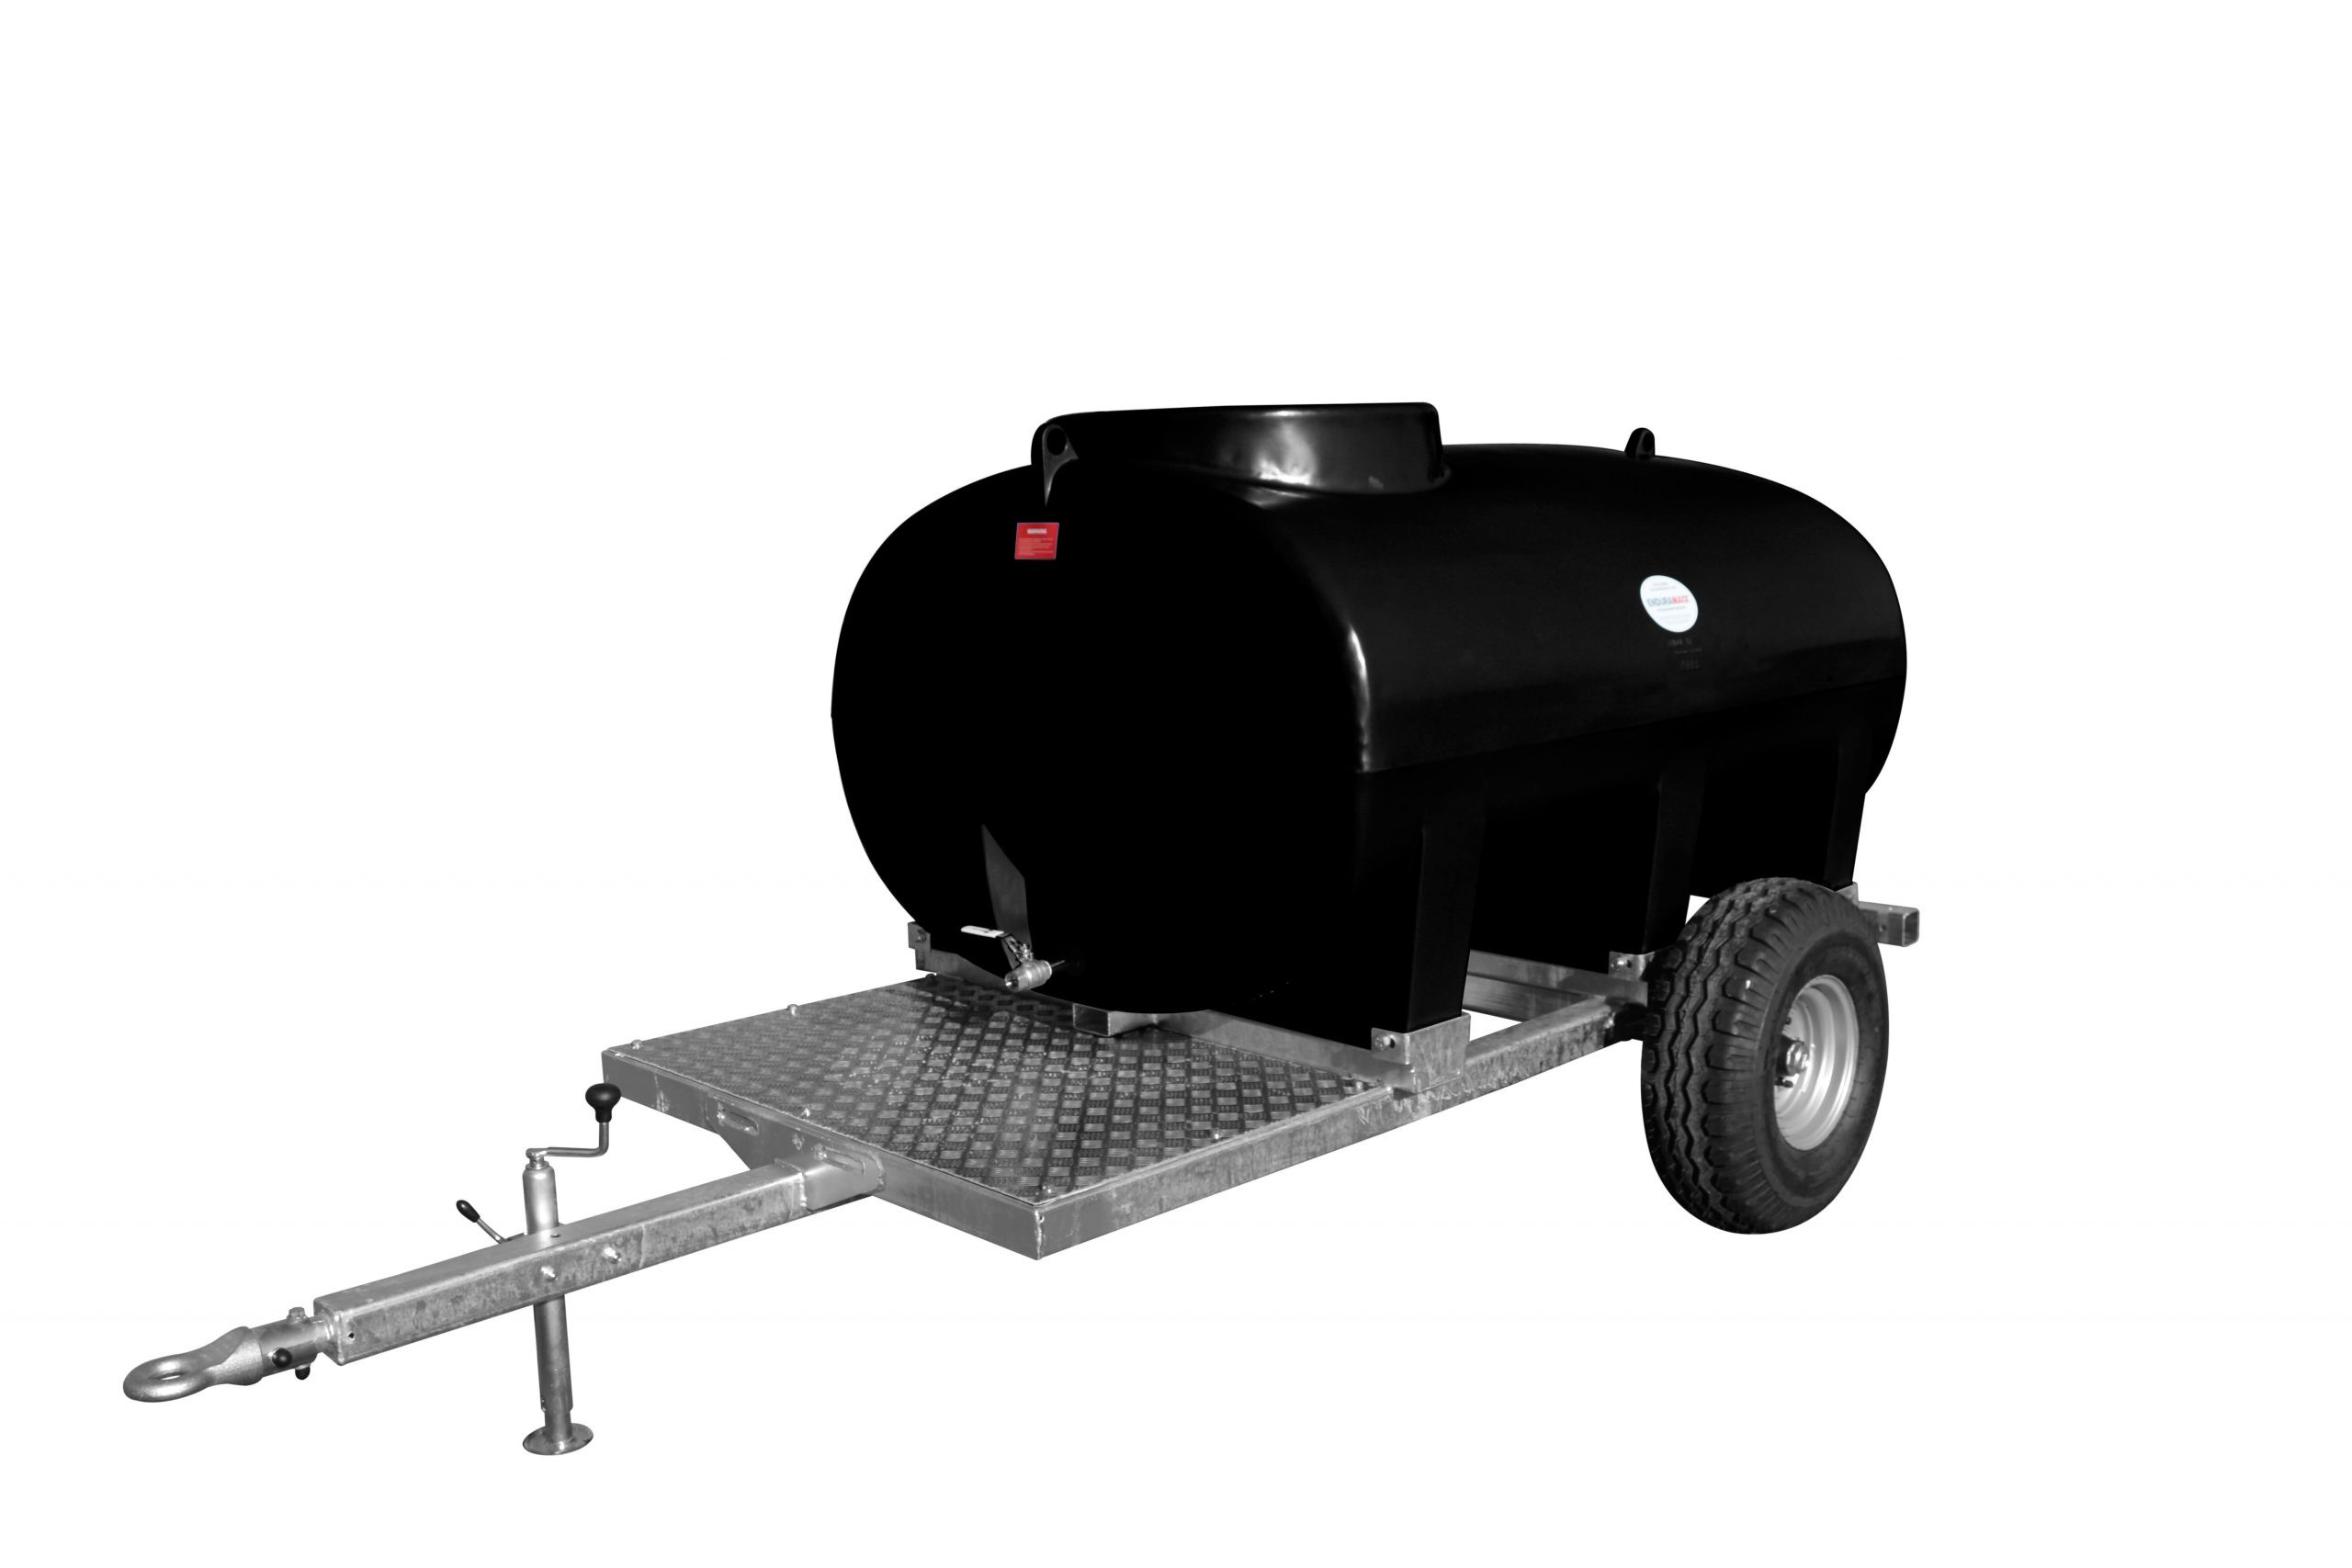 1200l Site Tow Water Bowser, image